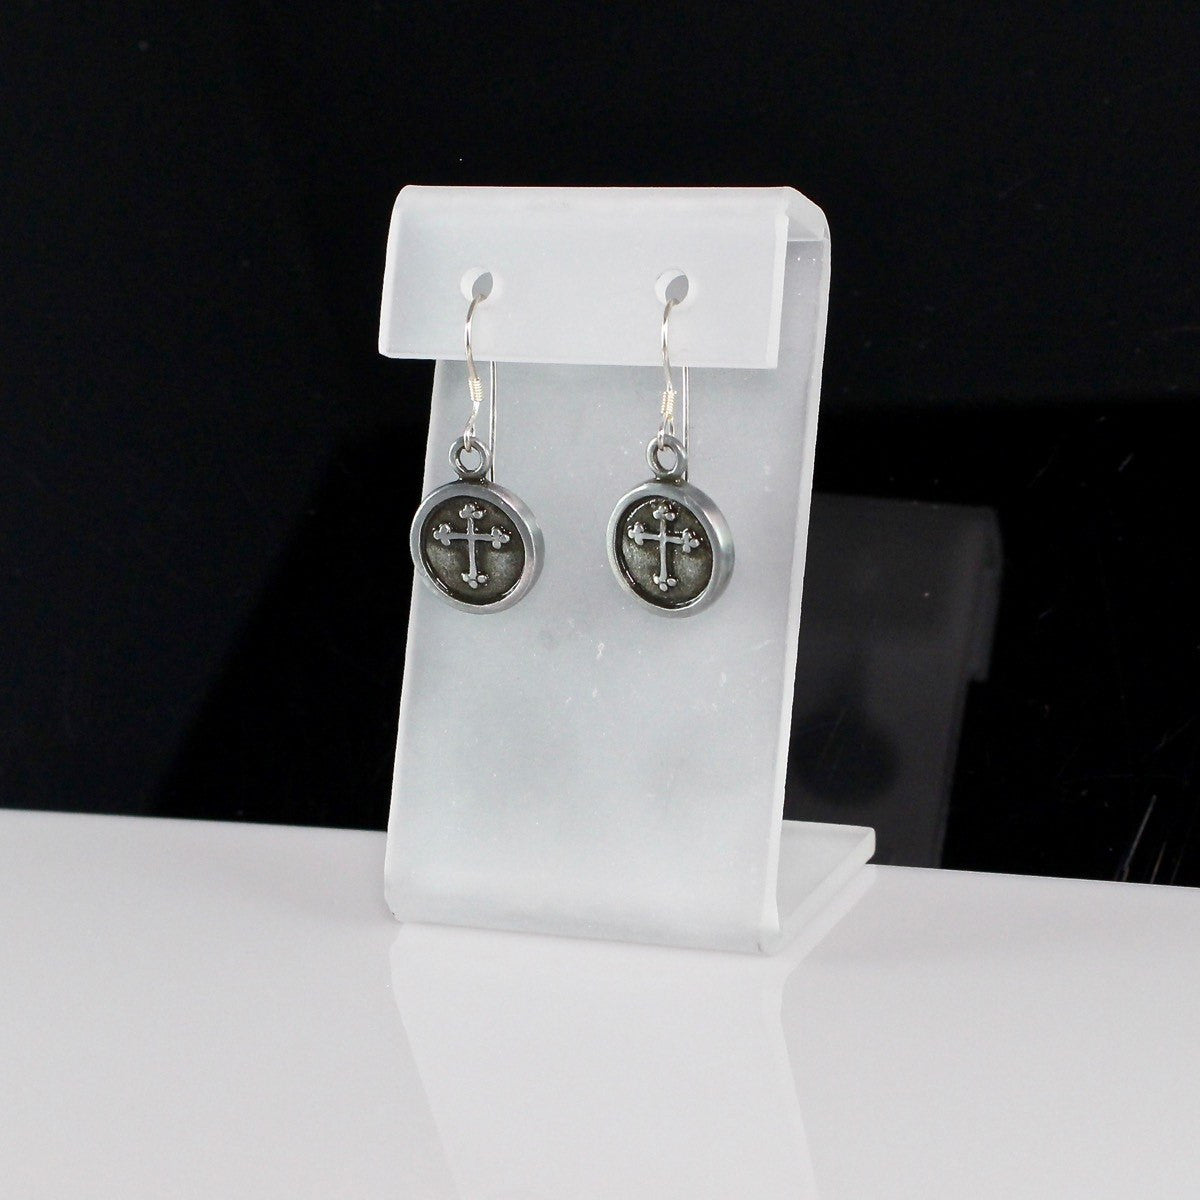 Round Pewter Fleur-de-lis Cross Earrings with Sterling Silver Ear Wires